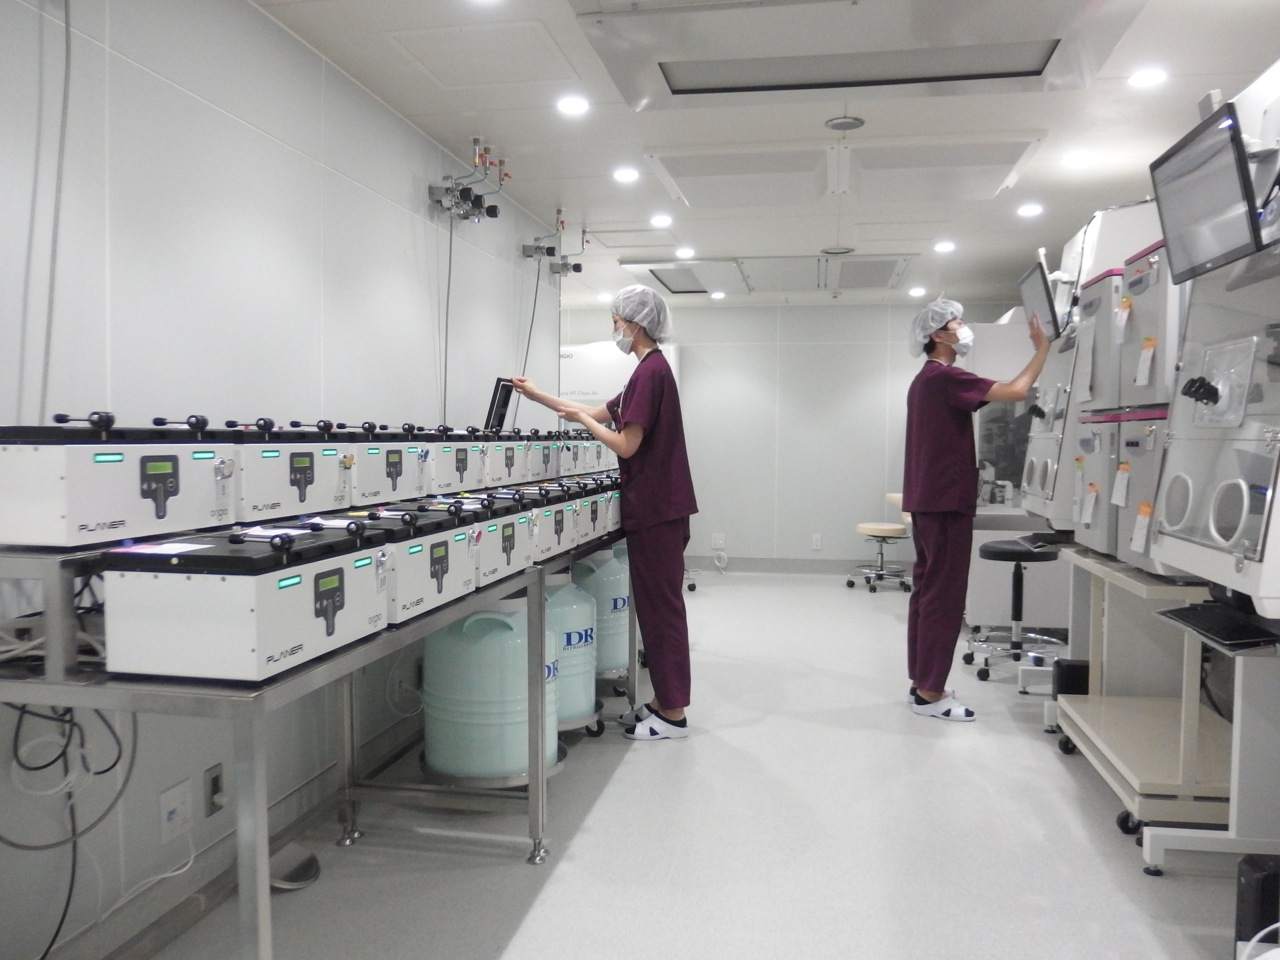 Incubators in the Reproduction Clinic Osaka